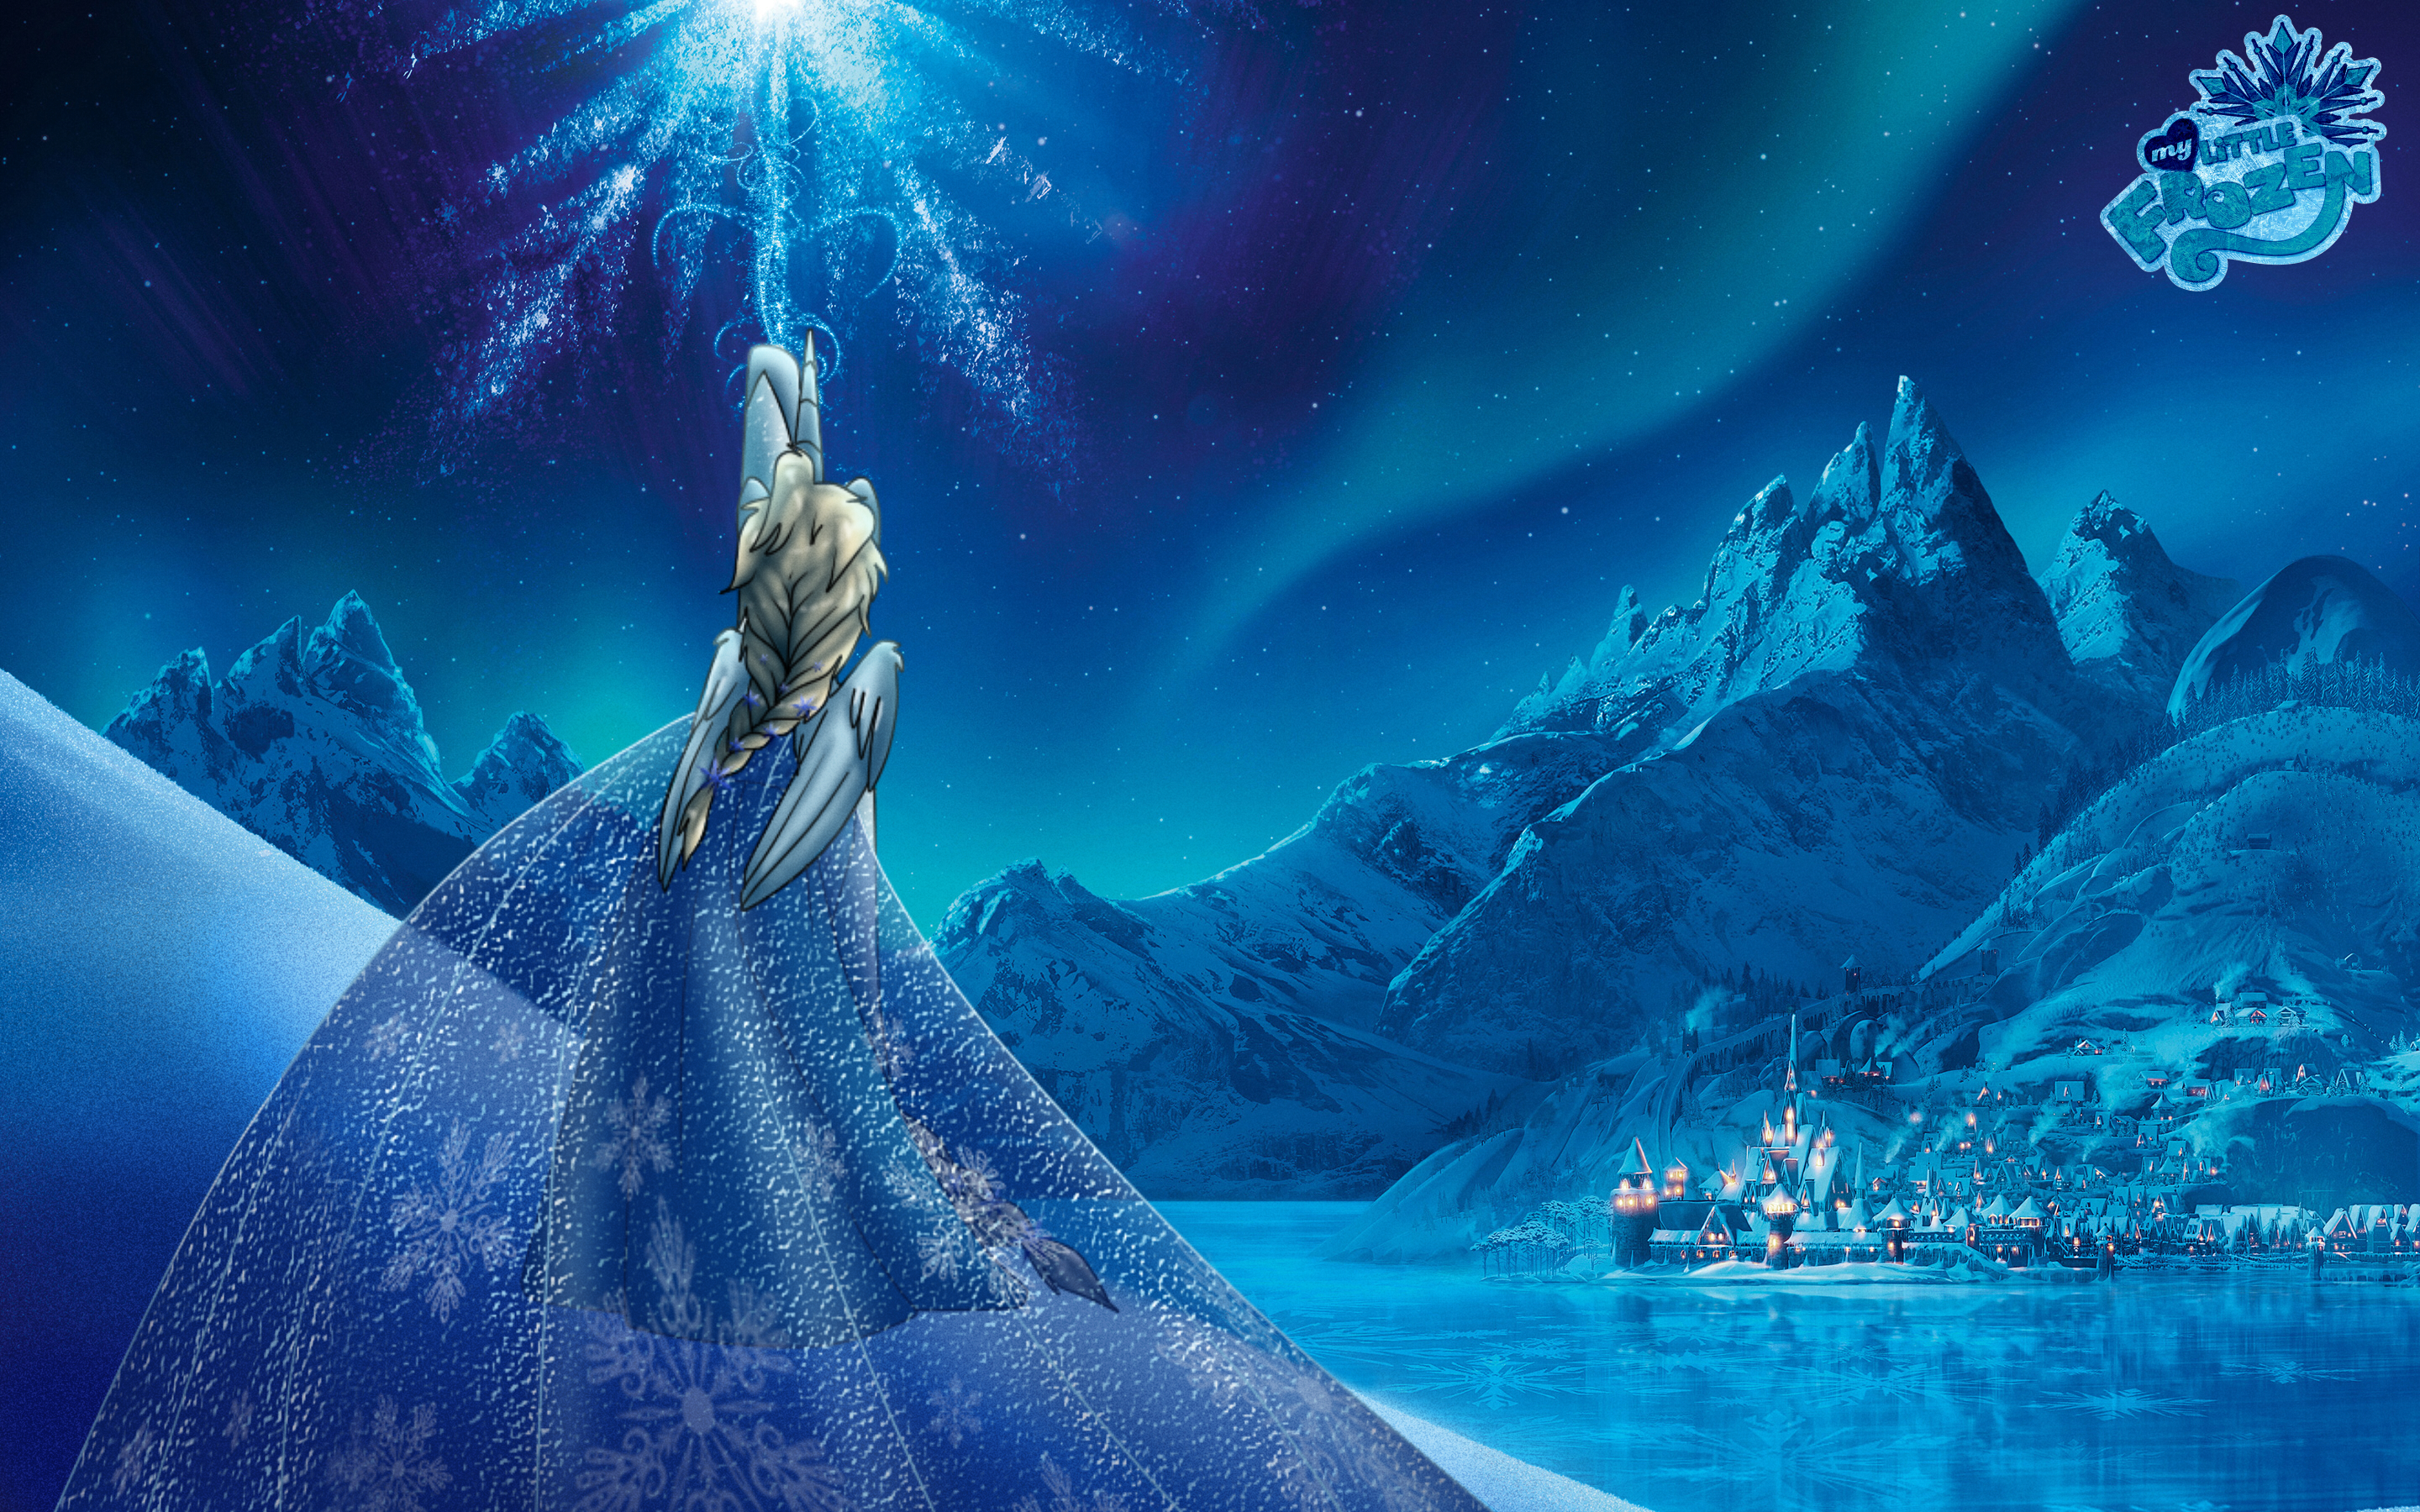 hd wallpaper frozen - photo #37